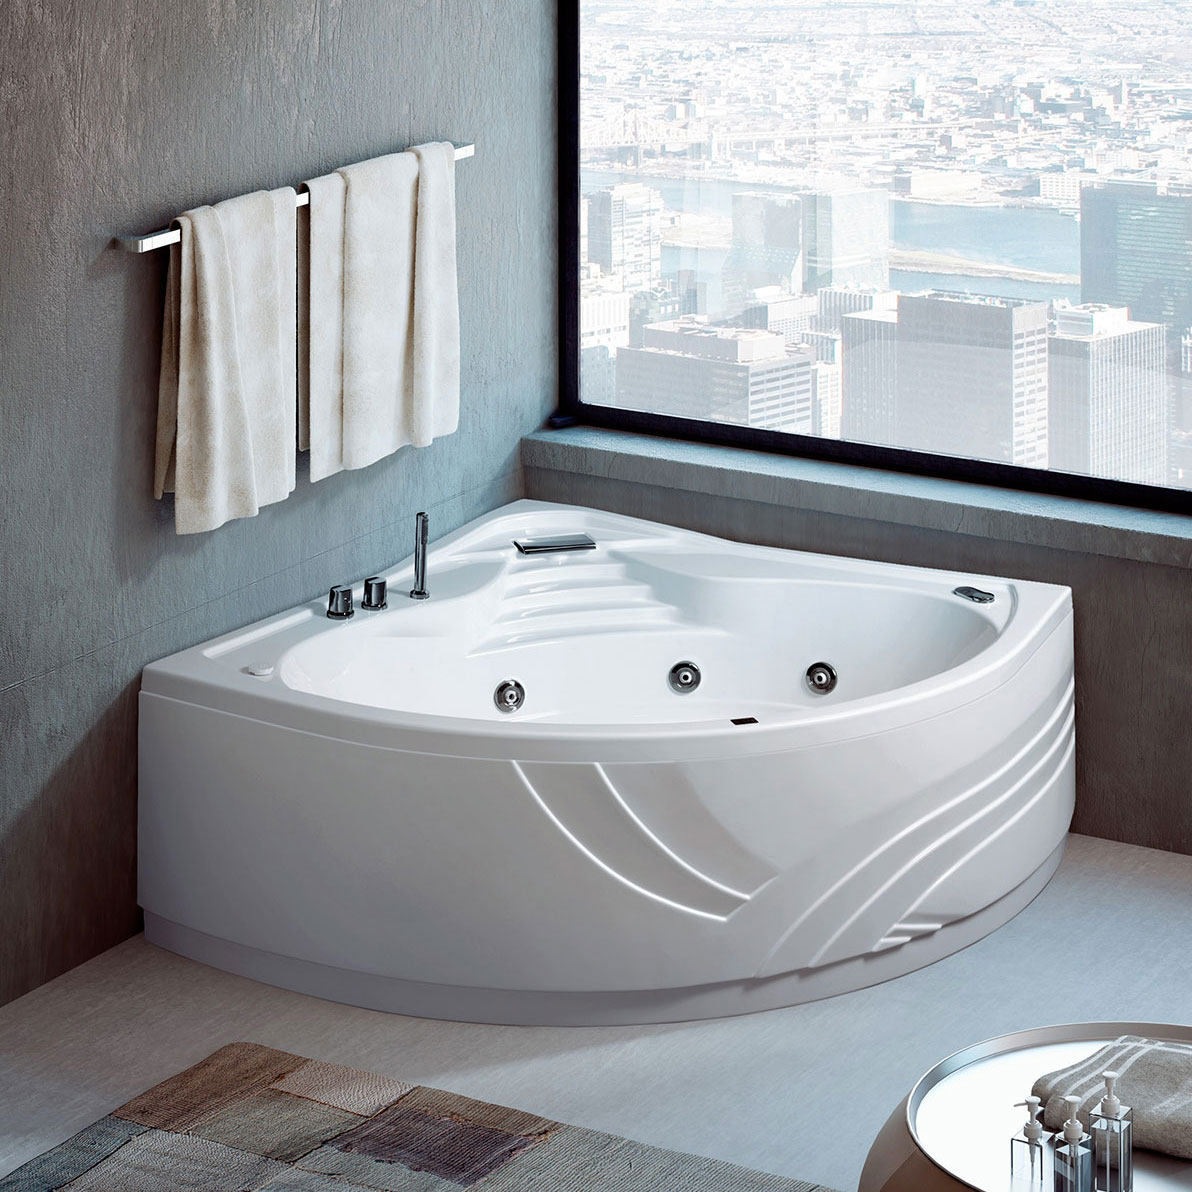 Capri corner and asymmetric bathtub - Bathtubs GLASS 1989